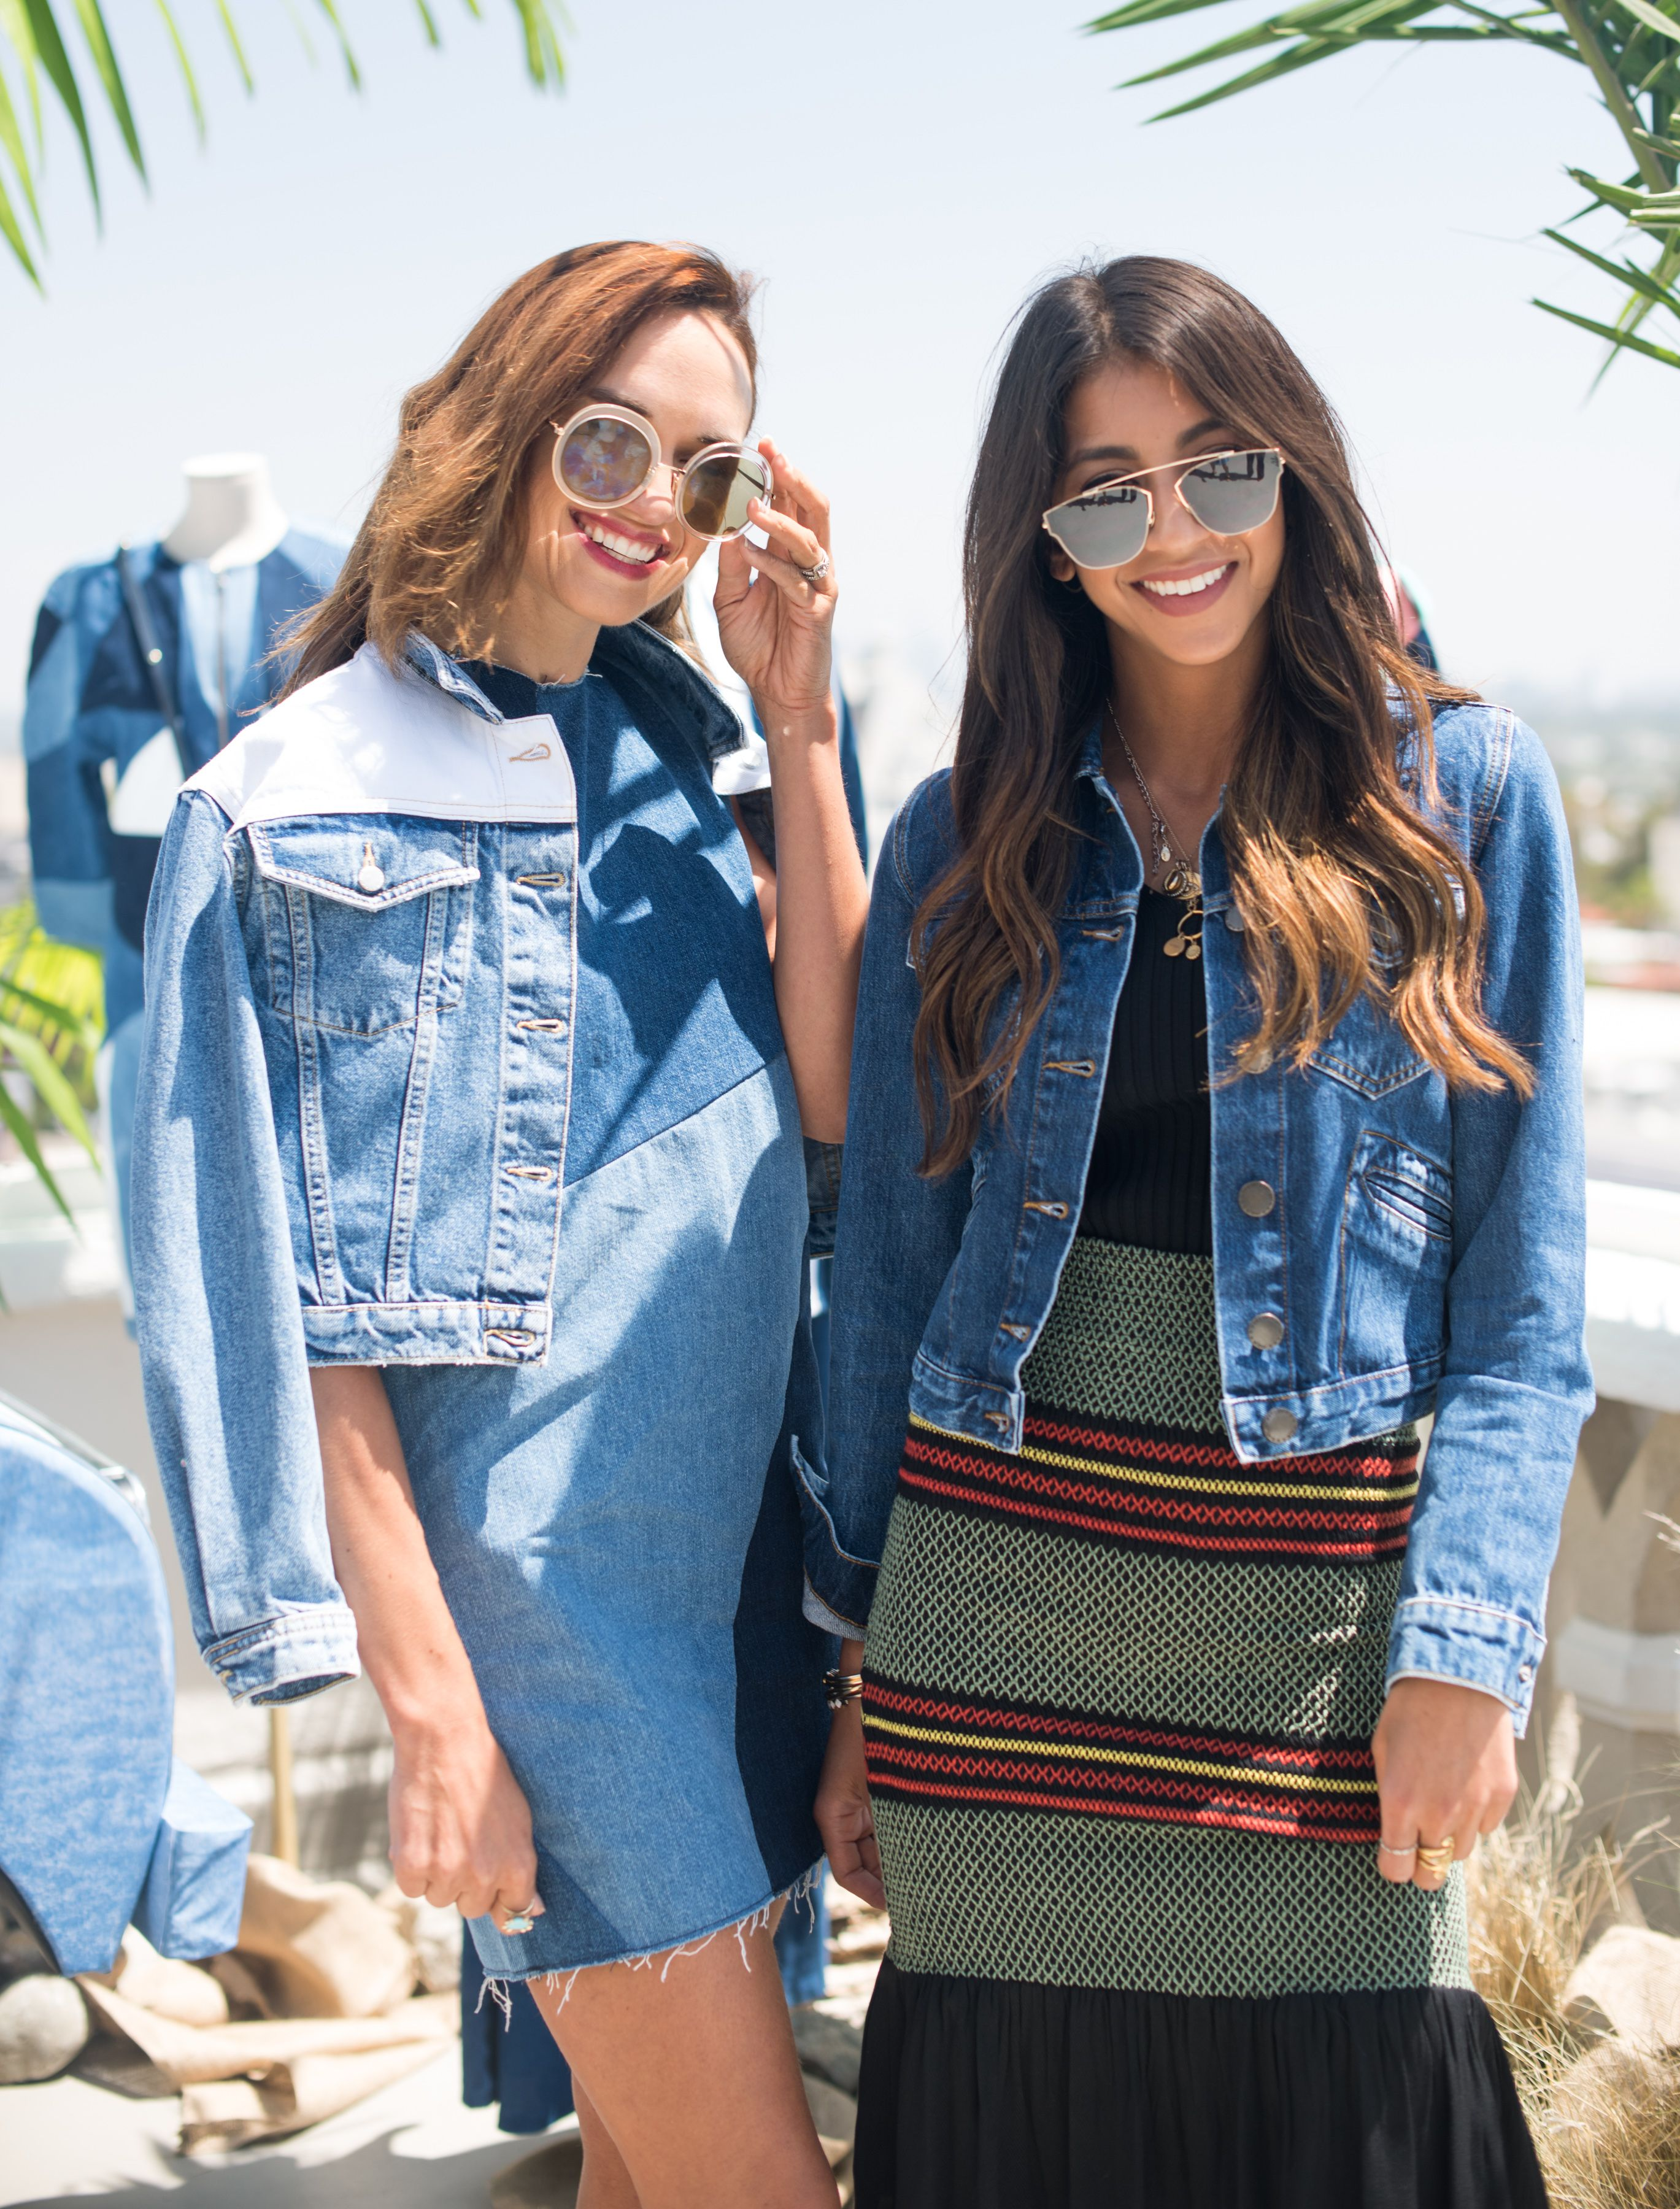 b8c1efe19 Shalice Noel and Kayla Seah , VALDA jacket- RATCH dress, Denim ...